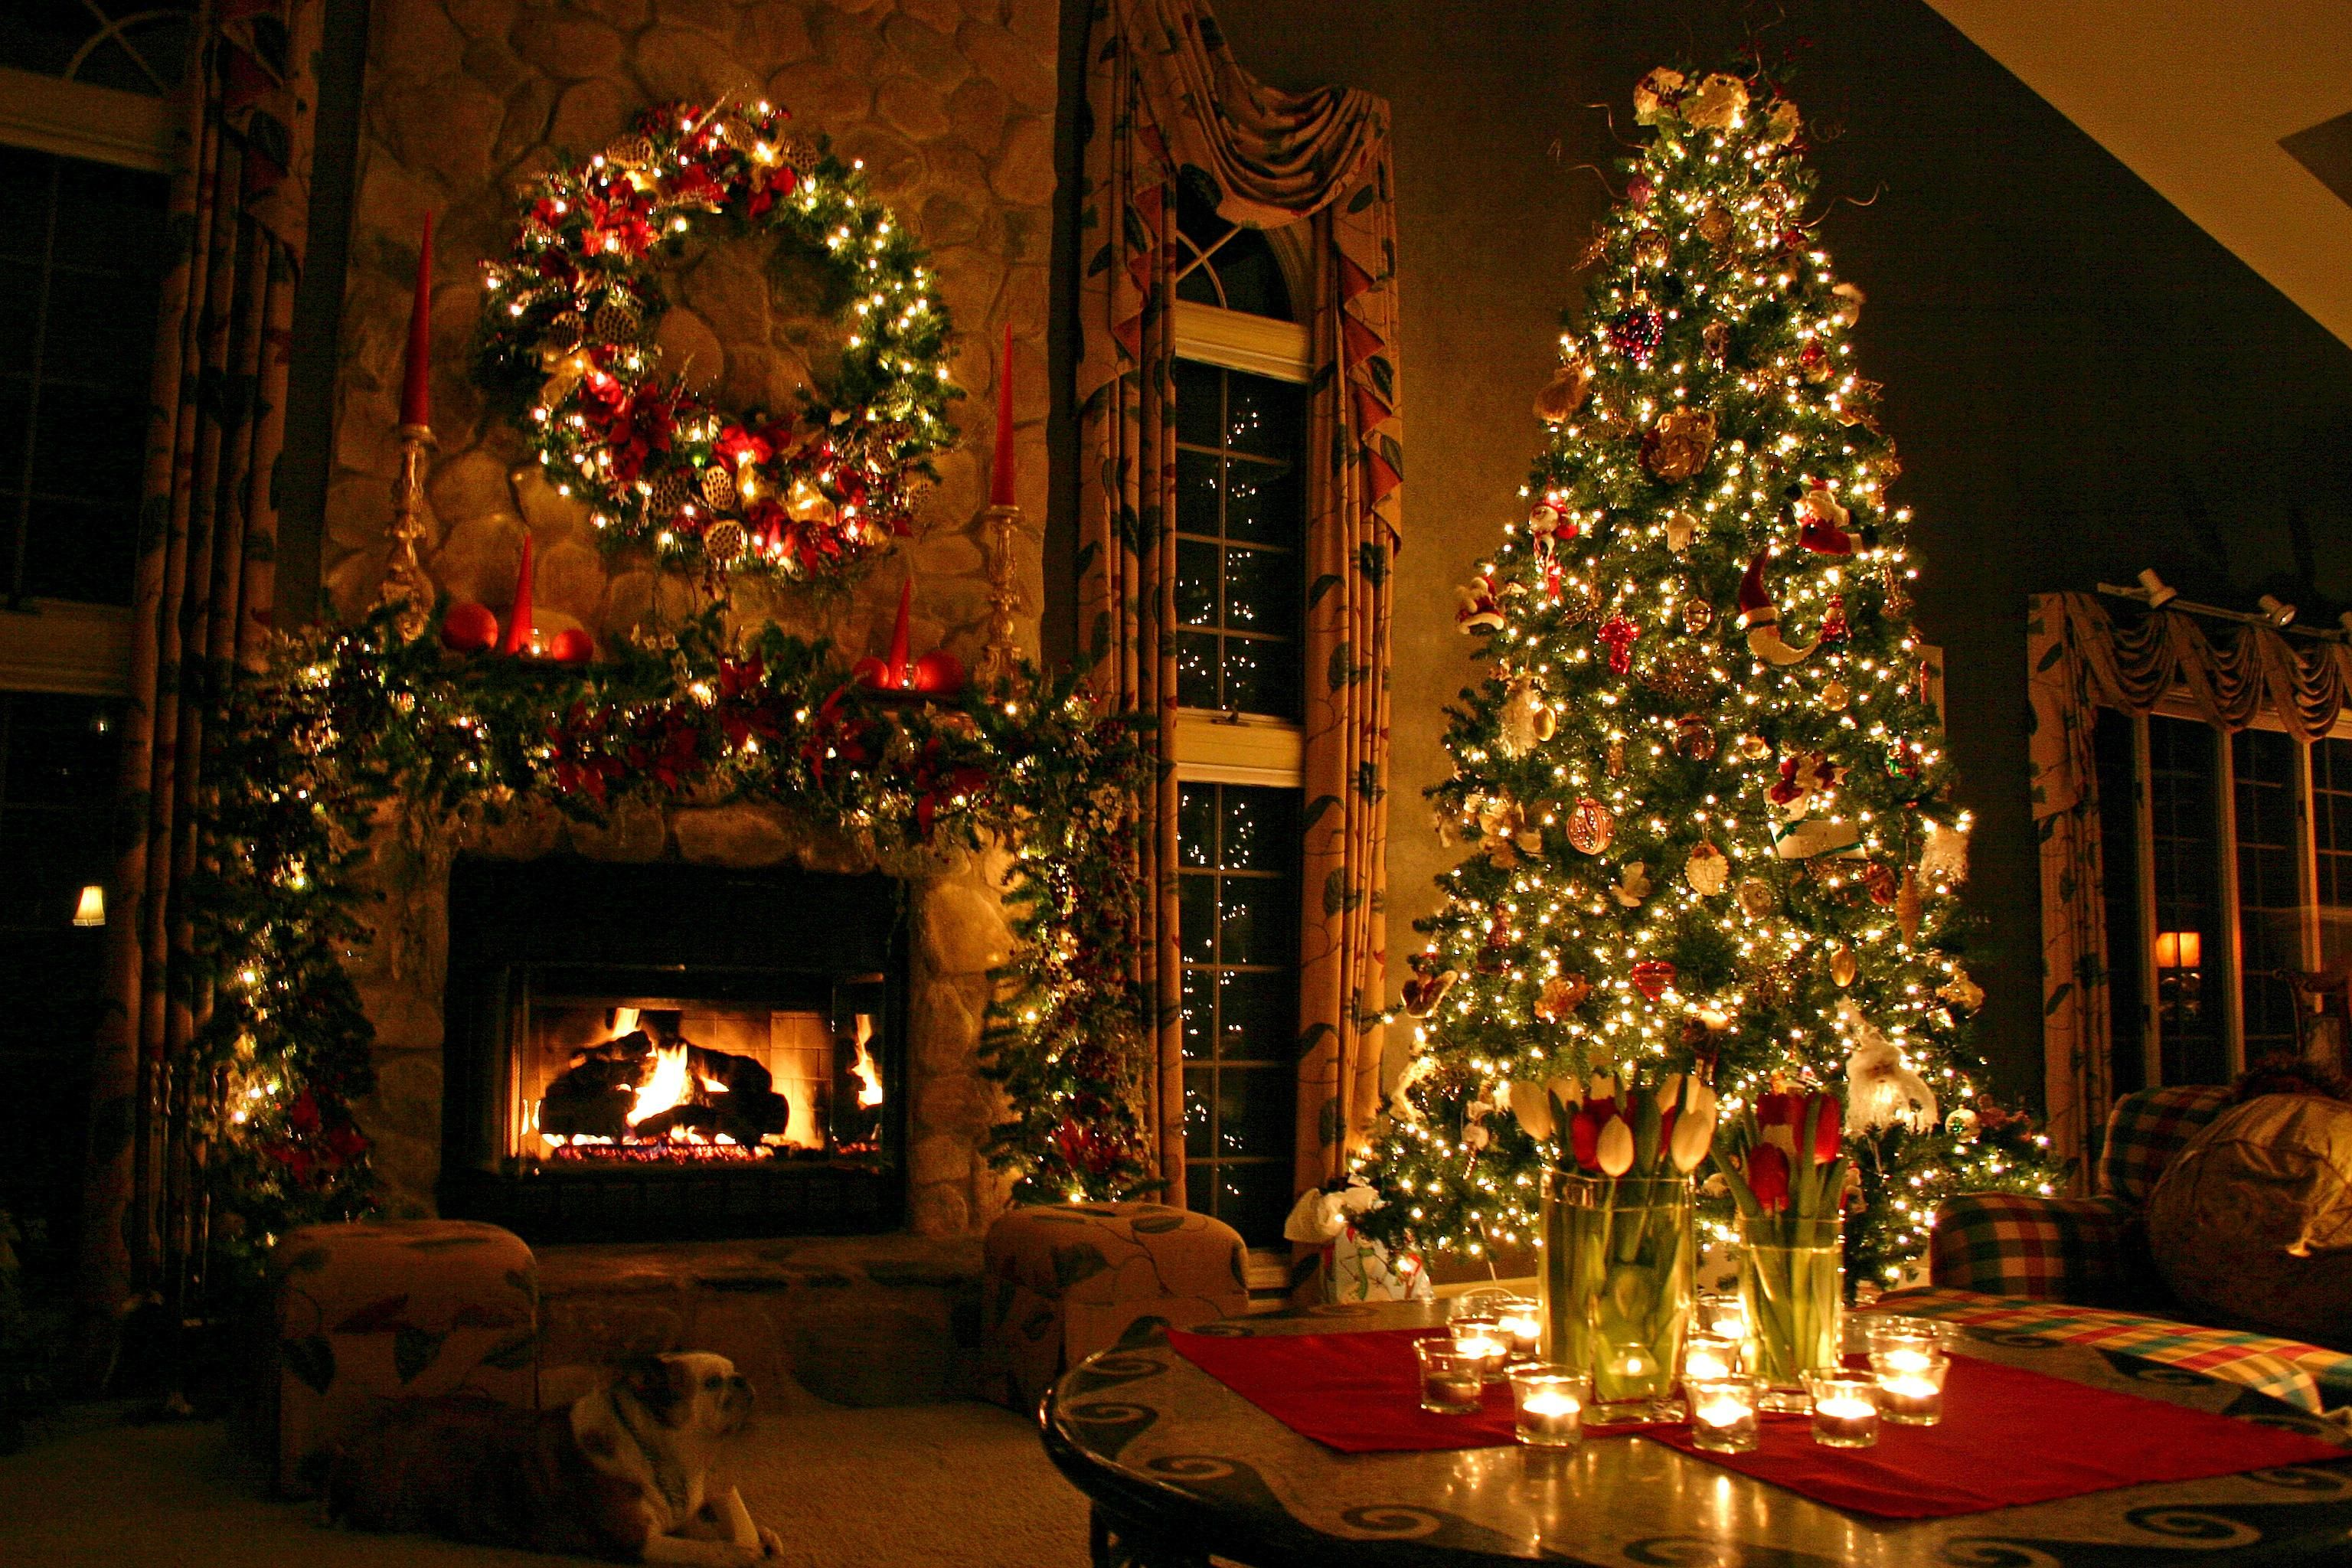 A Cozy Scene With A Beautiful Christmas Tree Wreath Fireplace